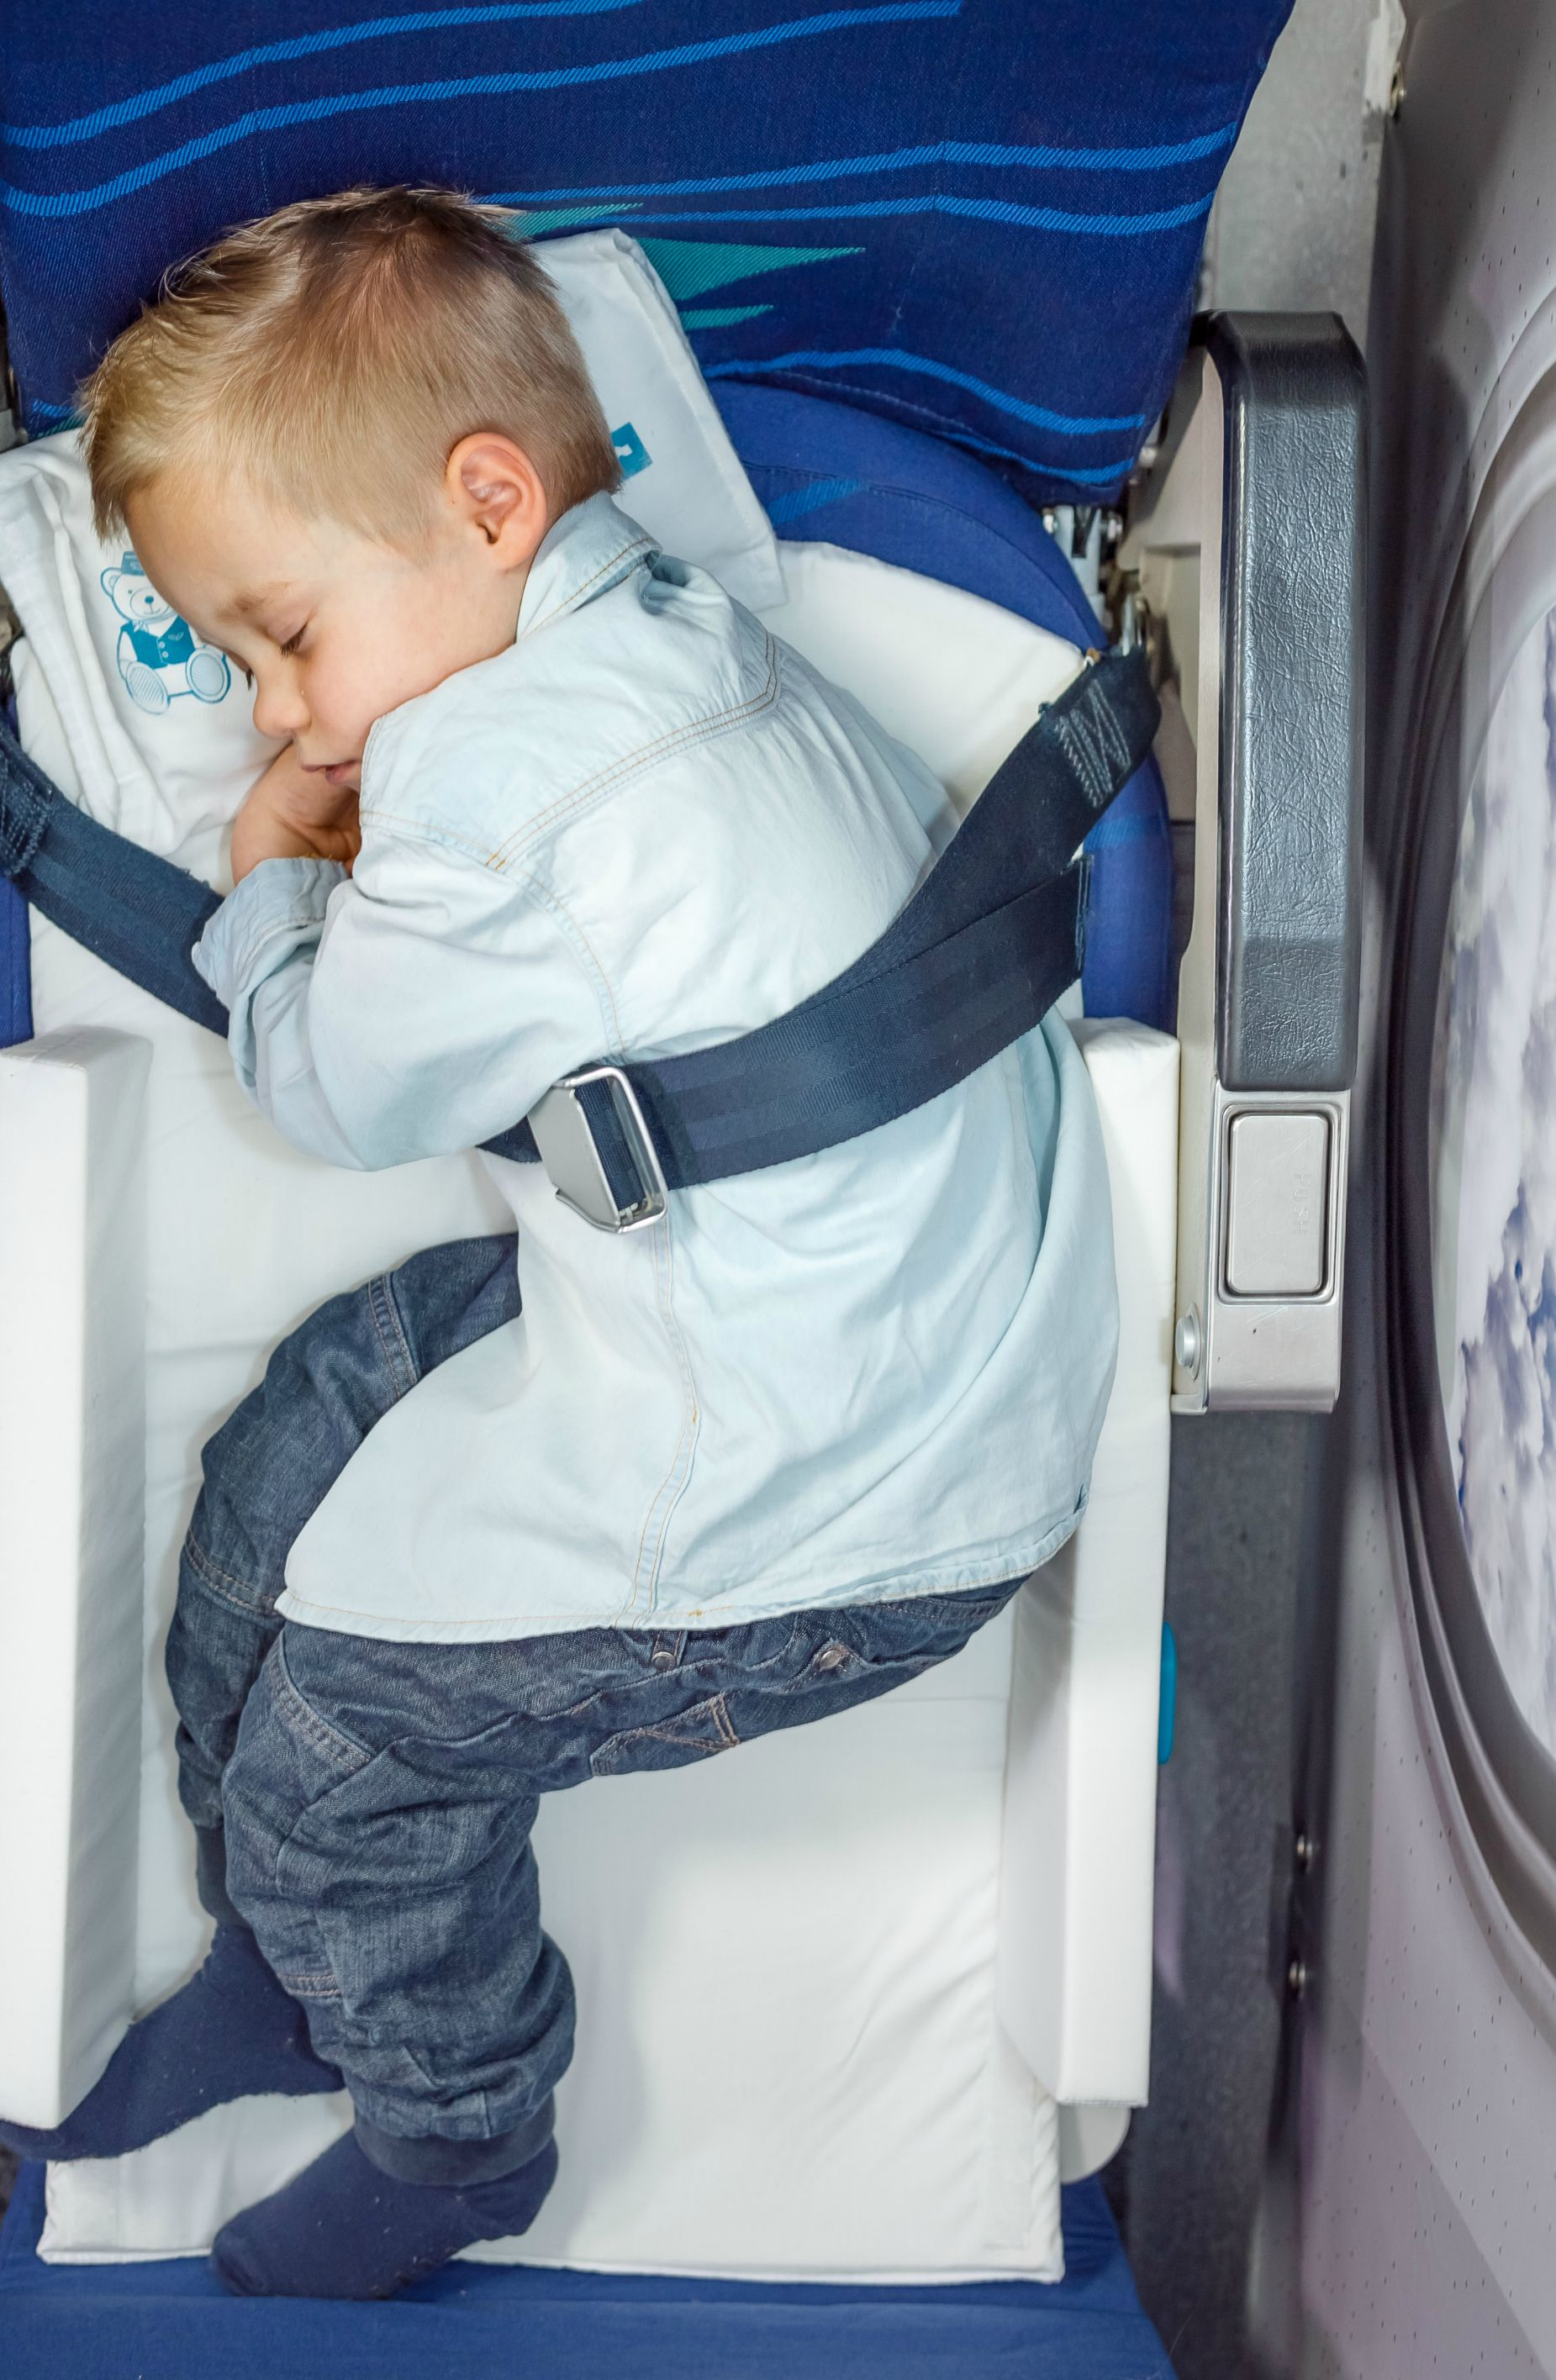 Bedbox By Jetkids It S A Suitcase It S A Bed It S A Miracle What Else Do You Need When Flying With K Travel Tips With Baby Flying With Kids Toddler Travel